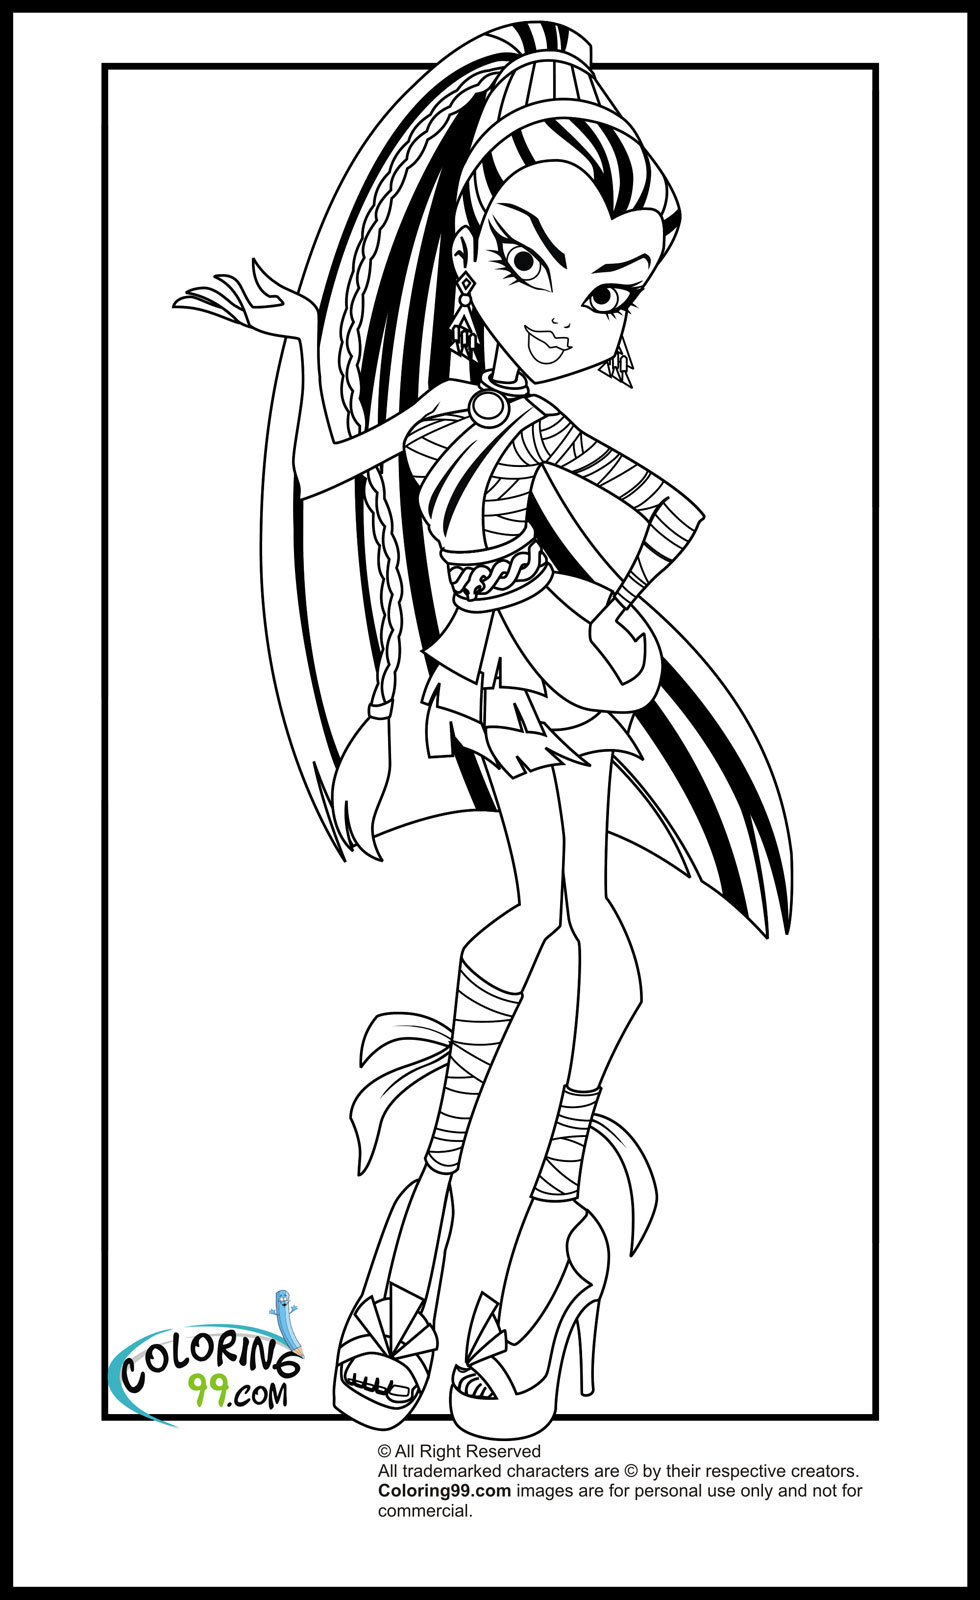 free printable monster high coloring pages coloring pages monster high coloring pages free and printable pages free printable high coloring monster